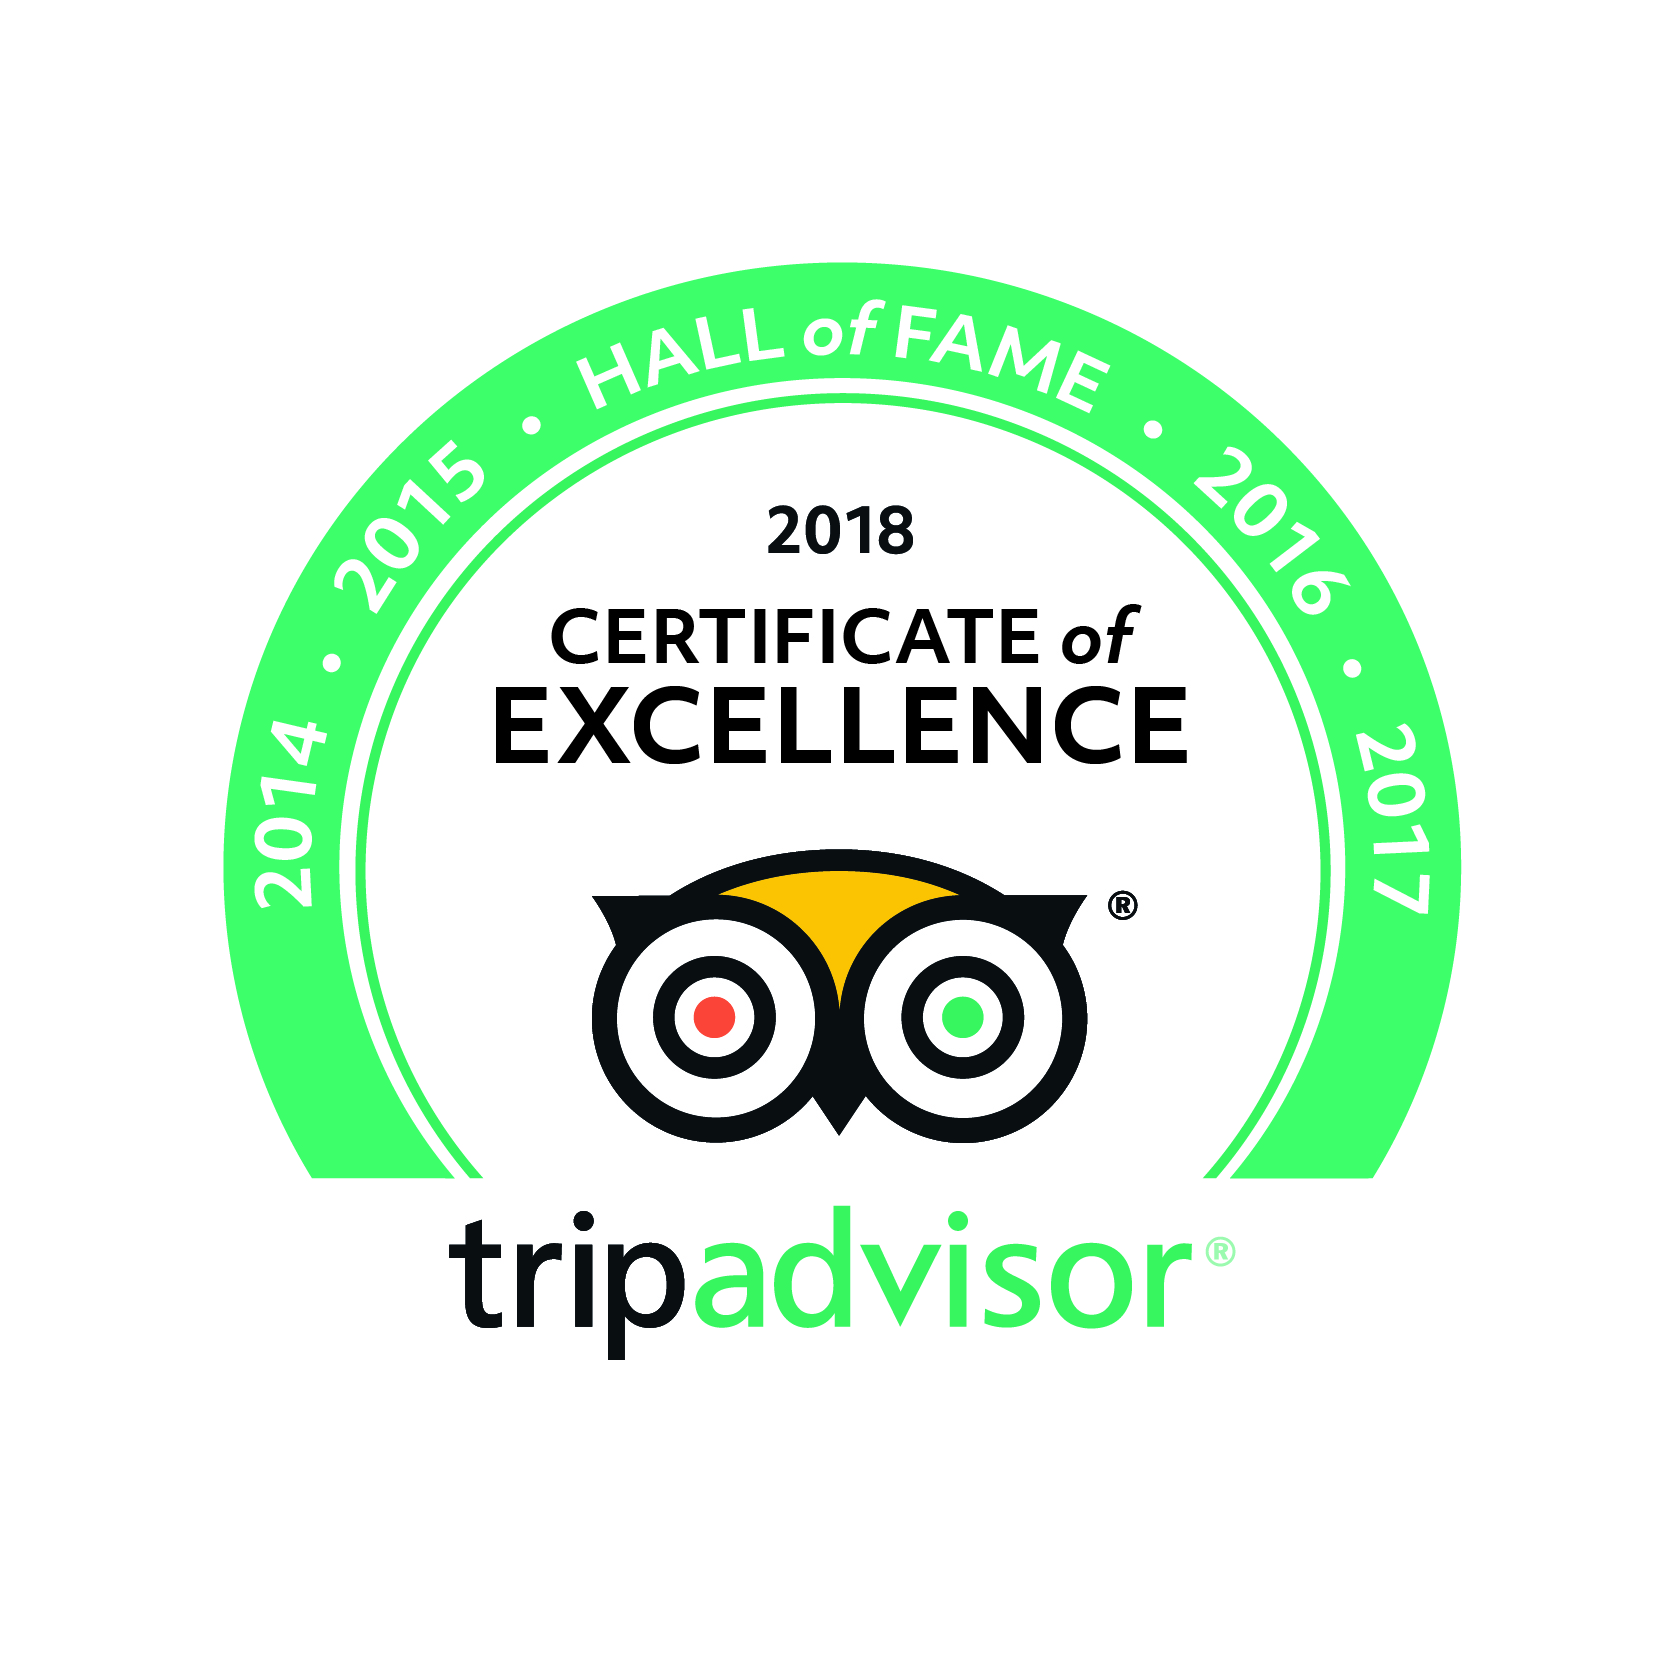 TripAdvisor Certification of Excellence – Hall of Fame – 2018